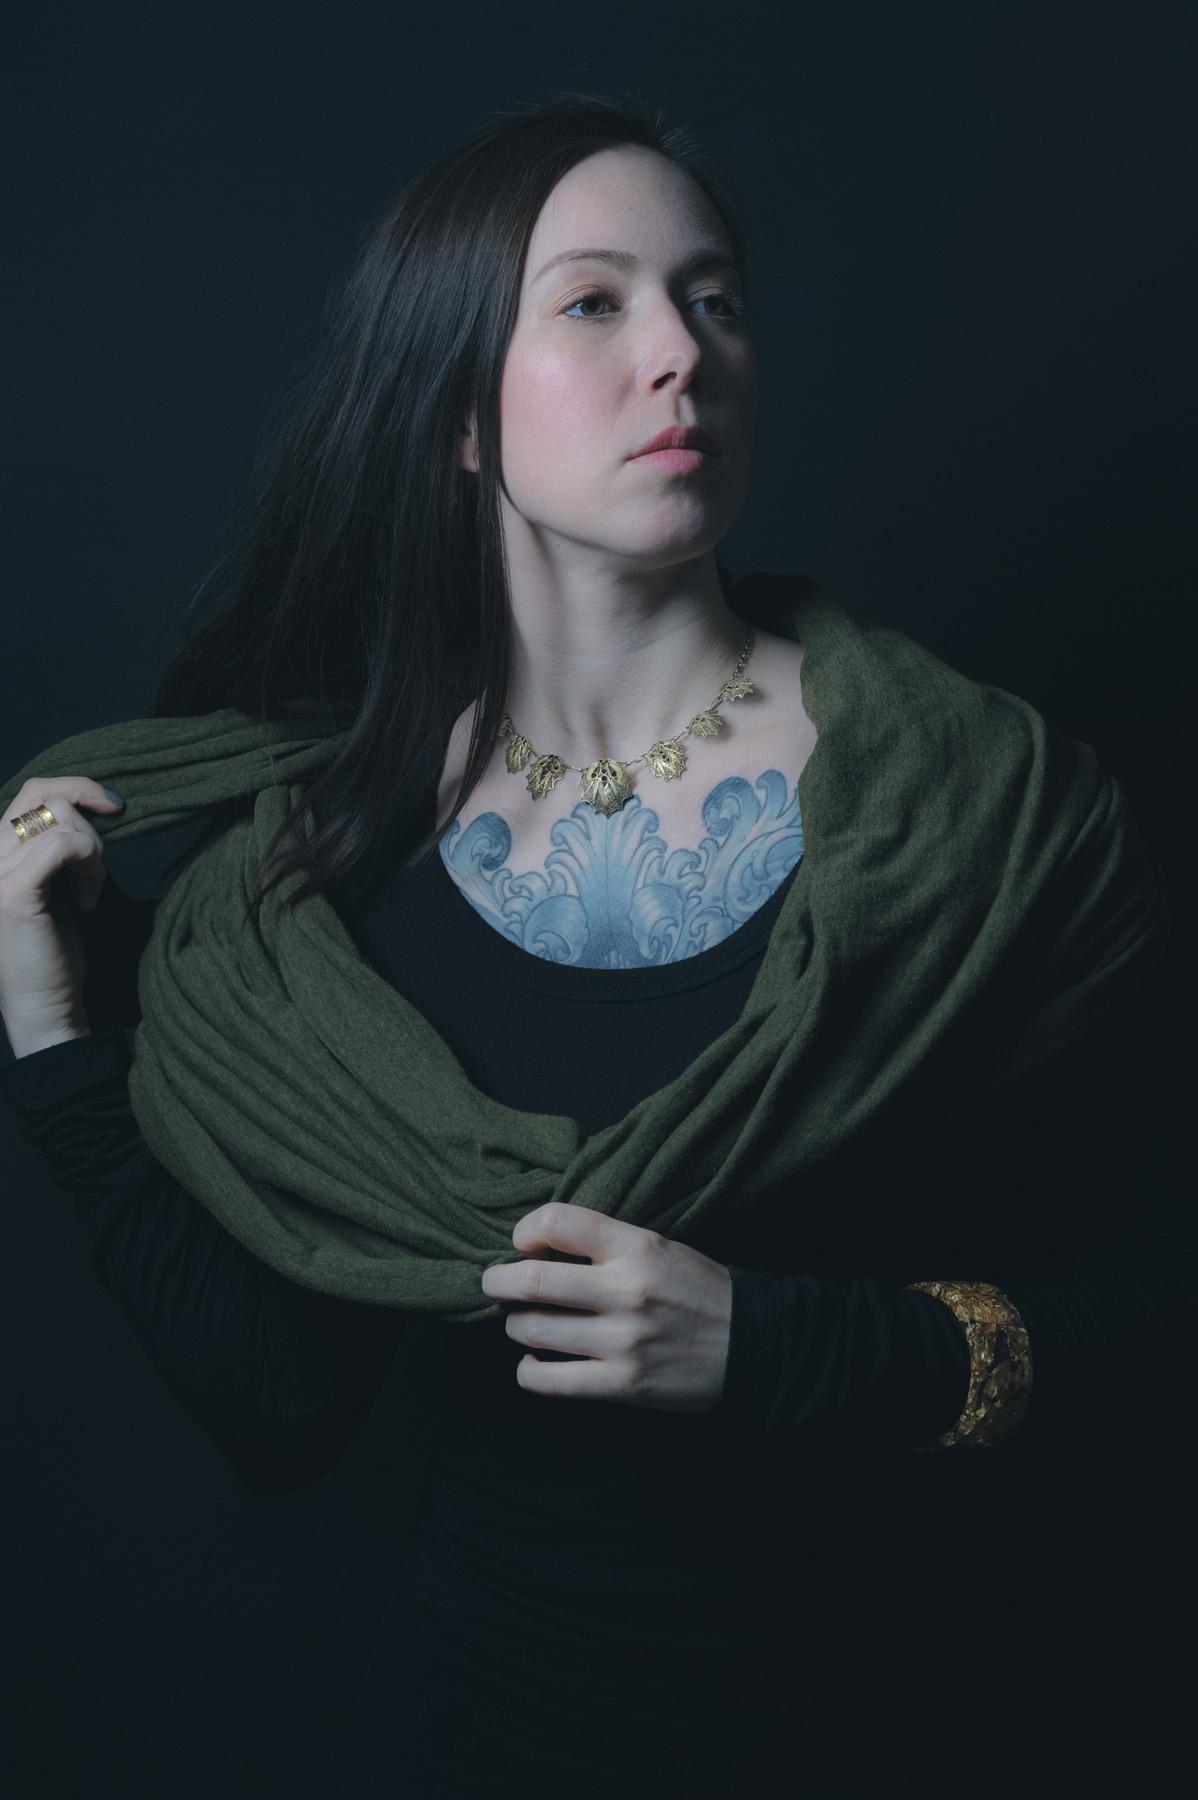 A portrait of Amelie wearing a black top with an ornate gold band around her left forearm, with a green scarf around her shoulder. she is in front of a black background.